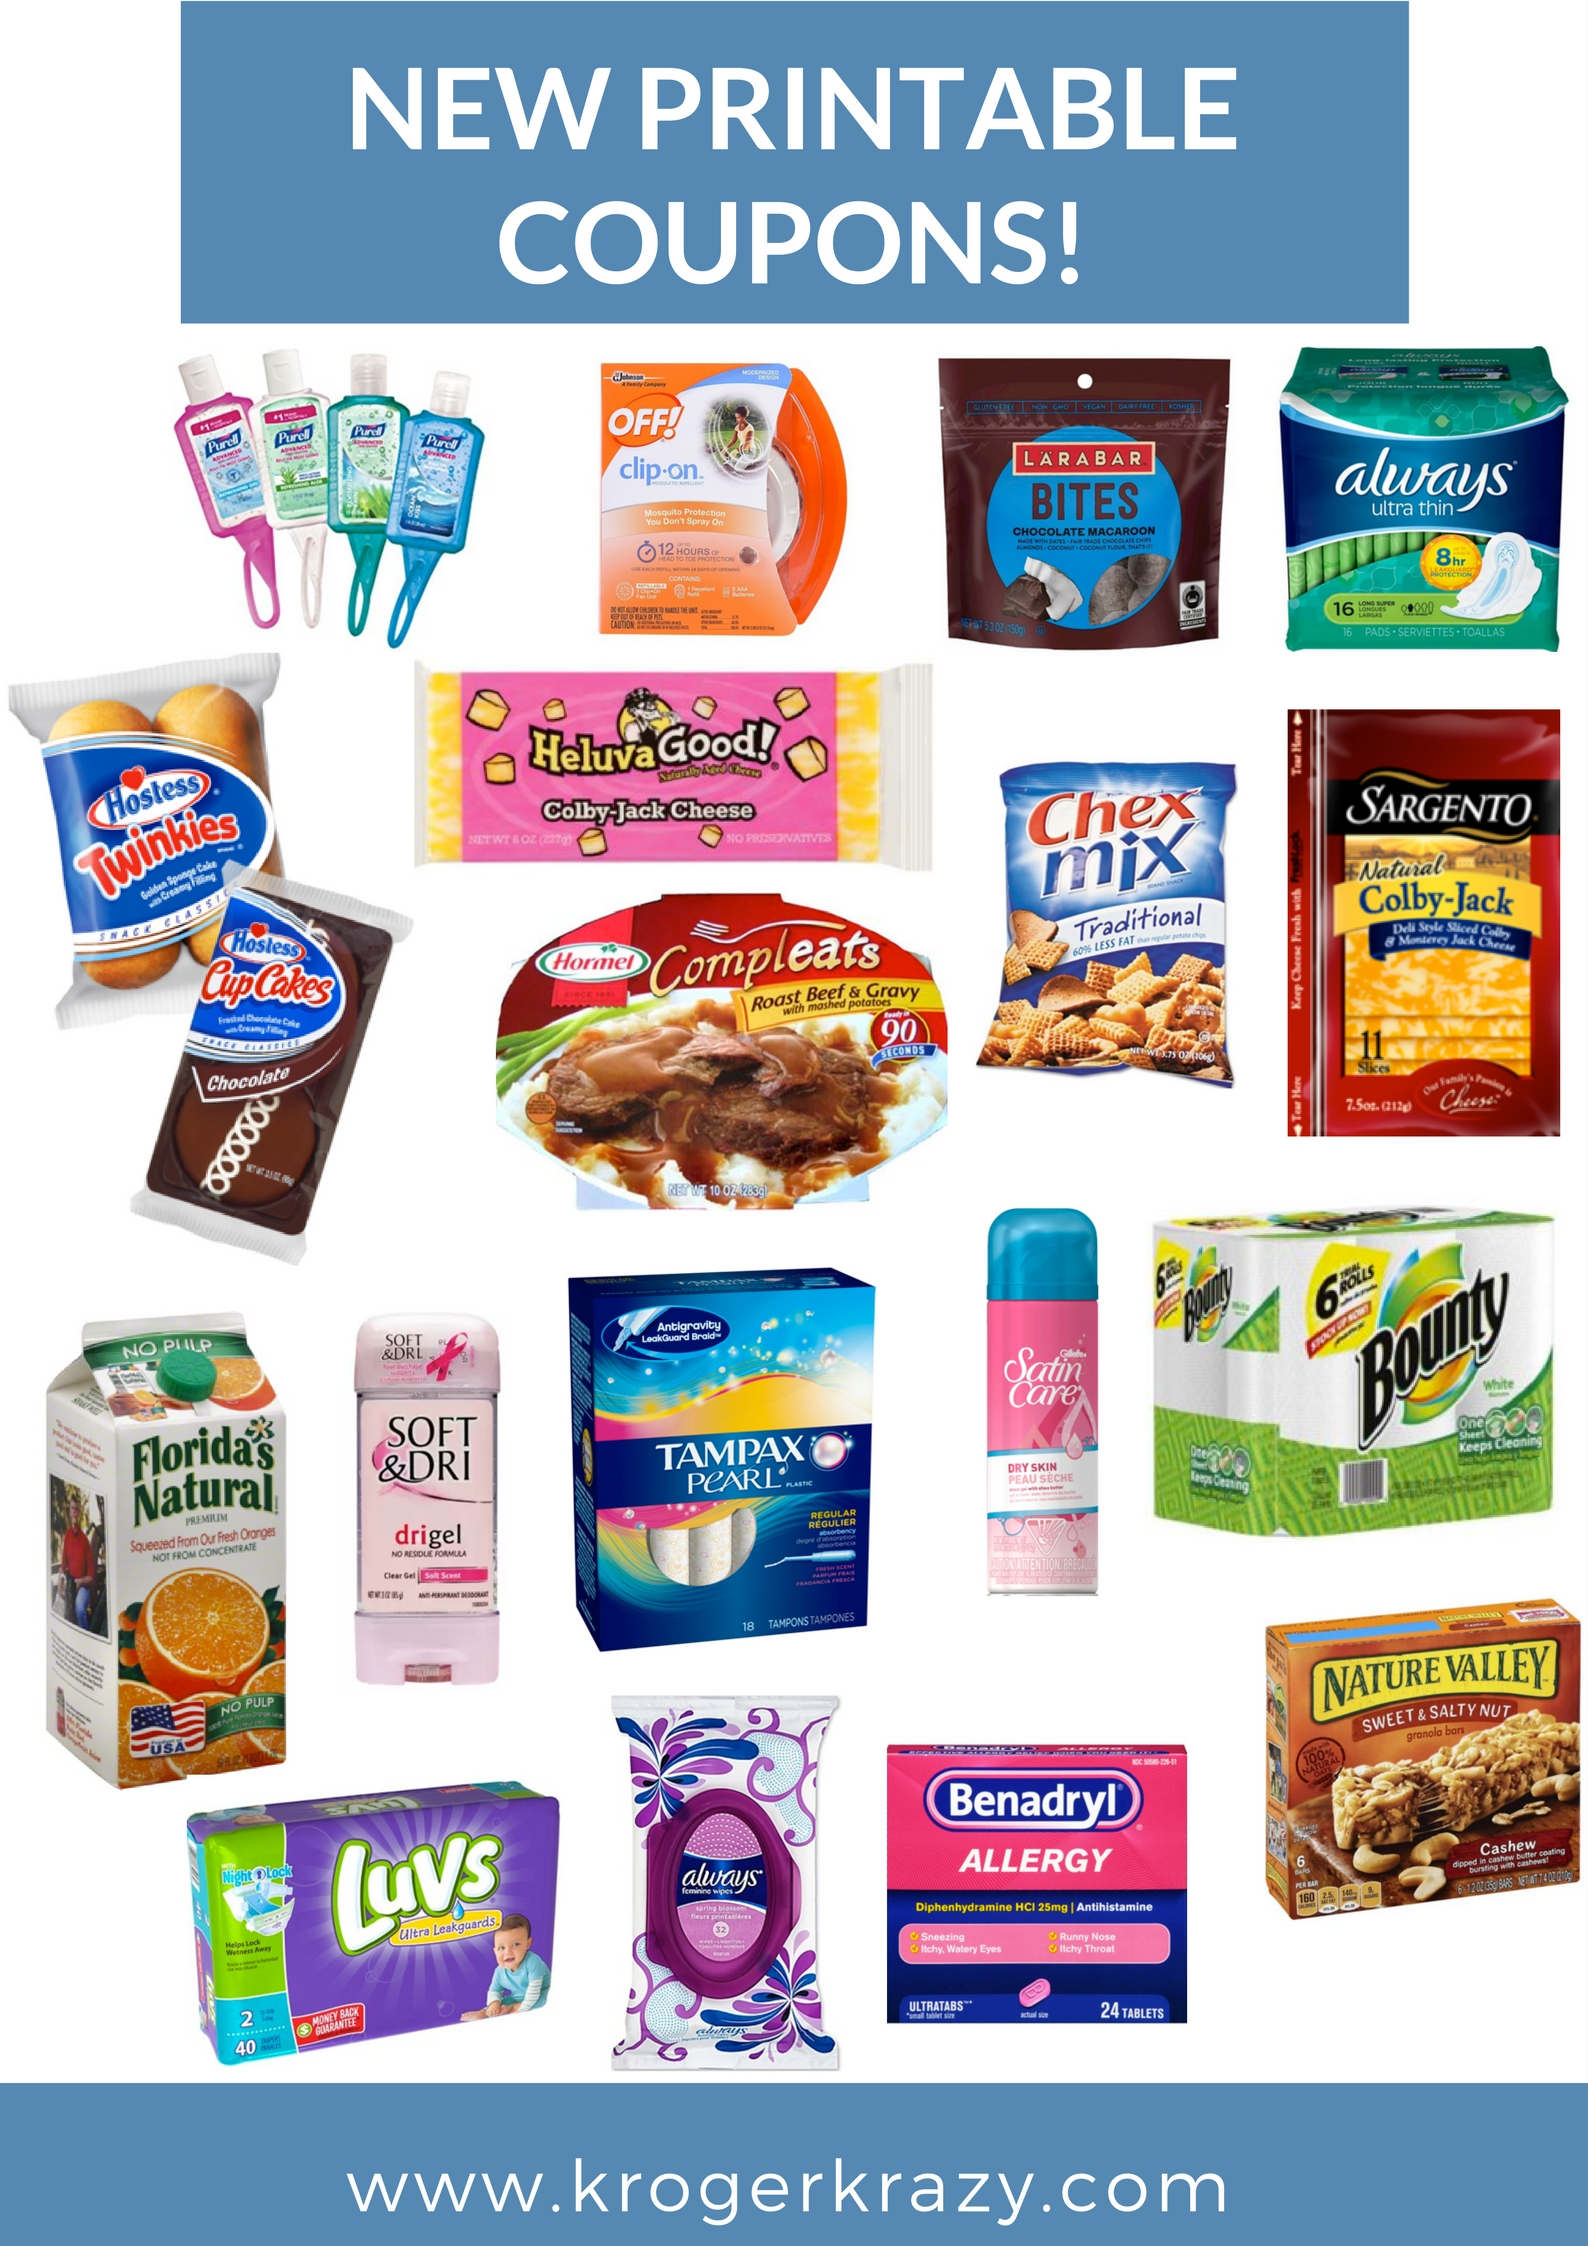 image relating to Benadryl Printable Coupon referred to as Fresh Thirty day period! Fresh new Printable Coupon codes! Hostess, Constantly, Tampax